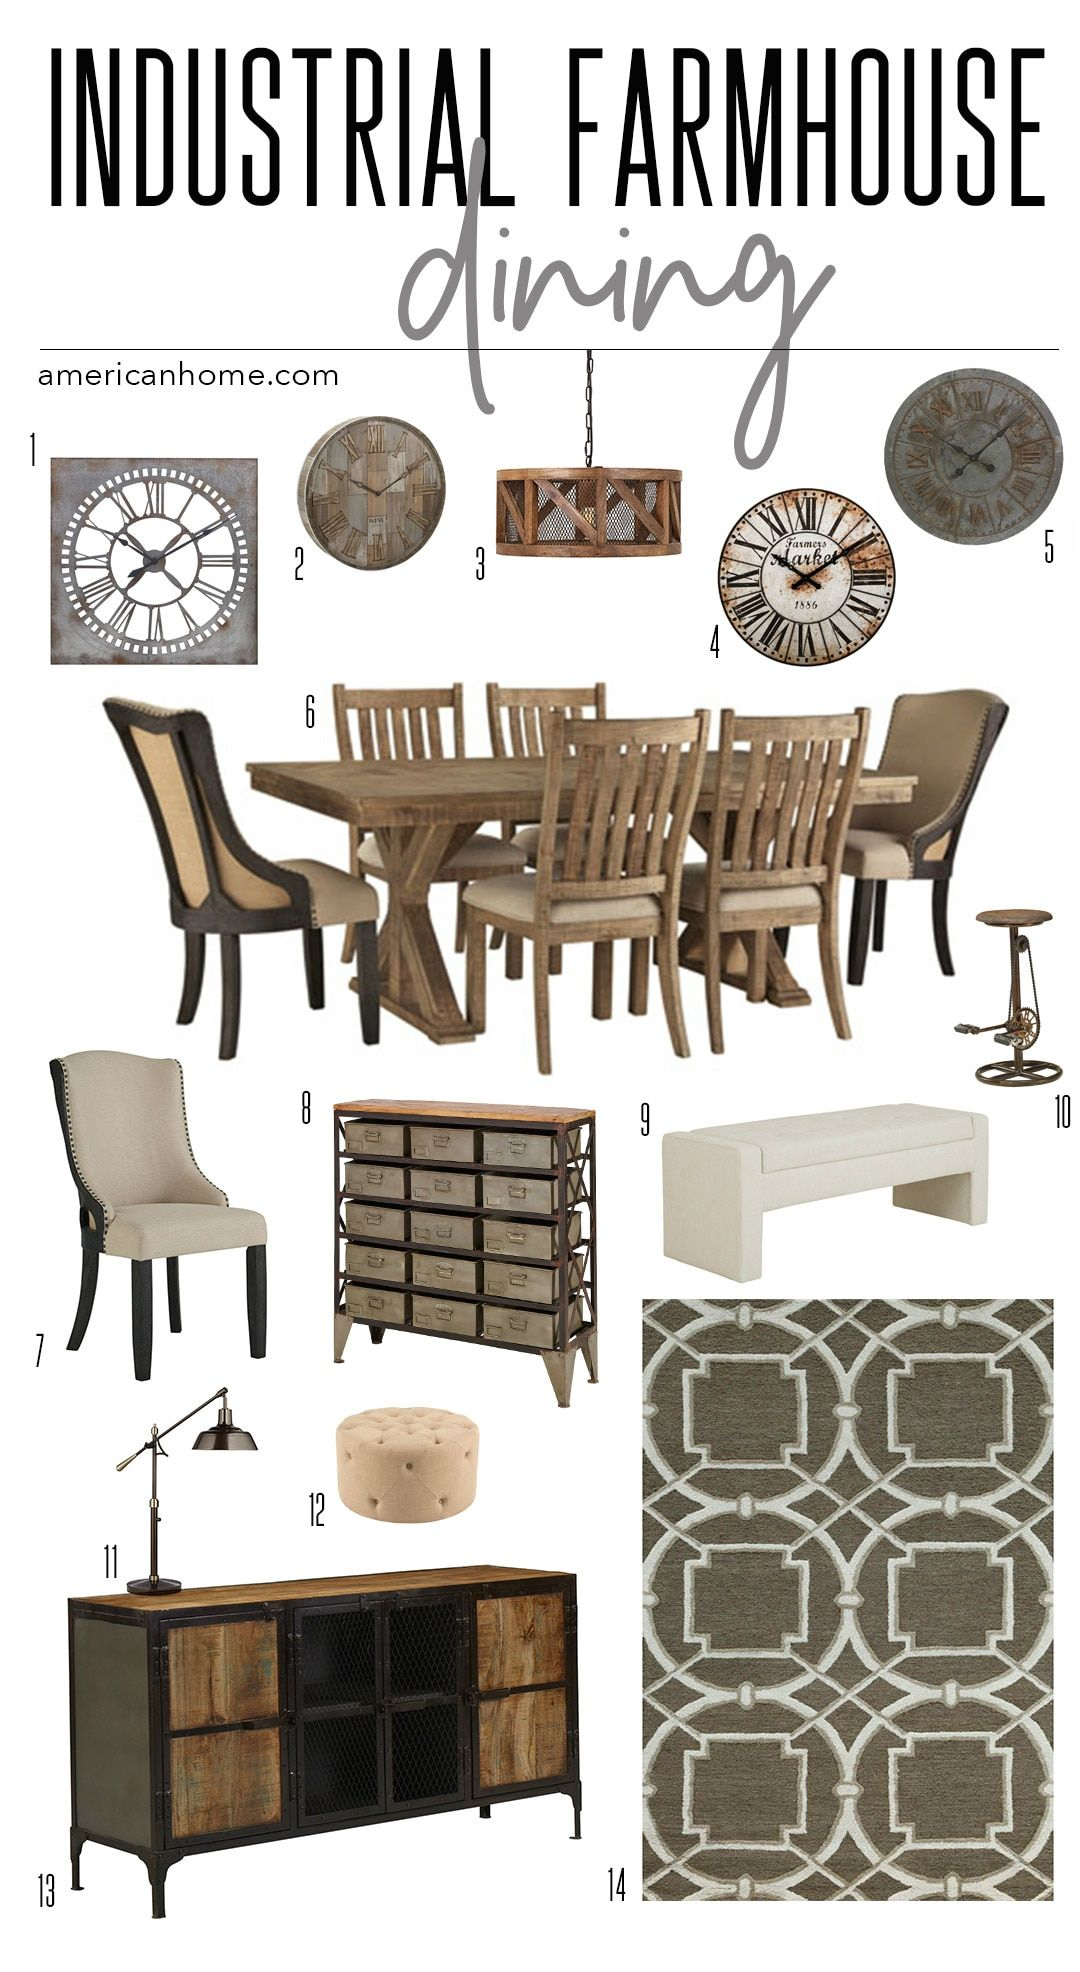 Storyboard industrial farmhouse dining in dining pinterest